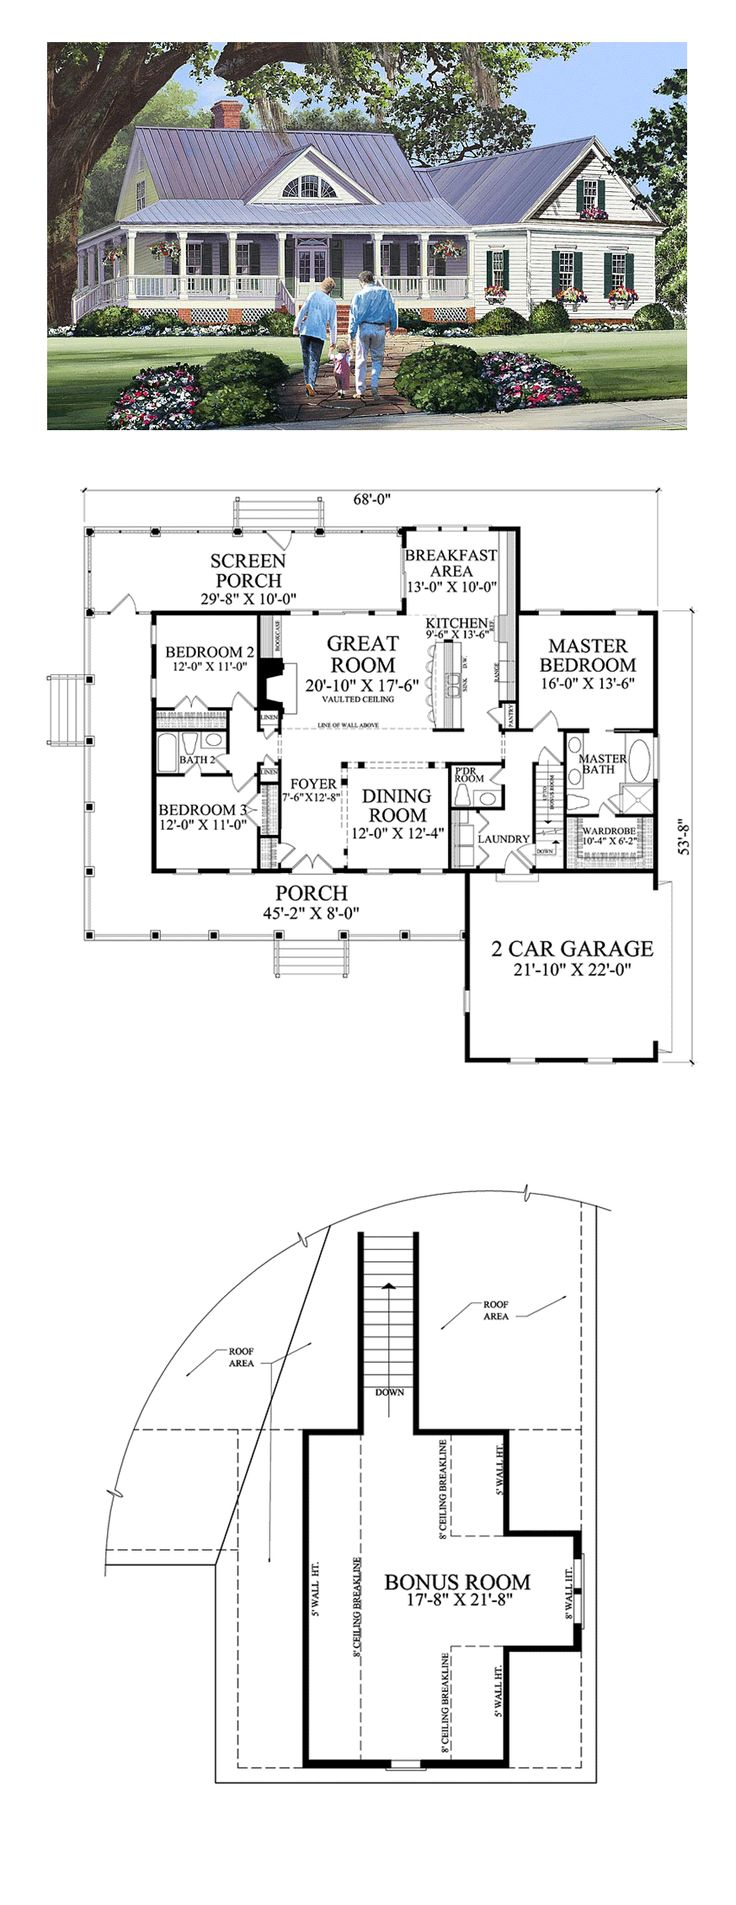 Best Selling House Plan 86344 | Total Living Area: 2010 SQ FT, 3 bedrooms and 2.5 bathrooms. #bestselling